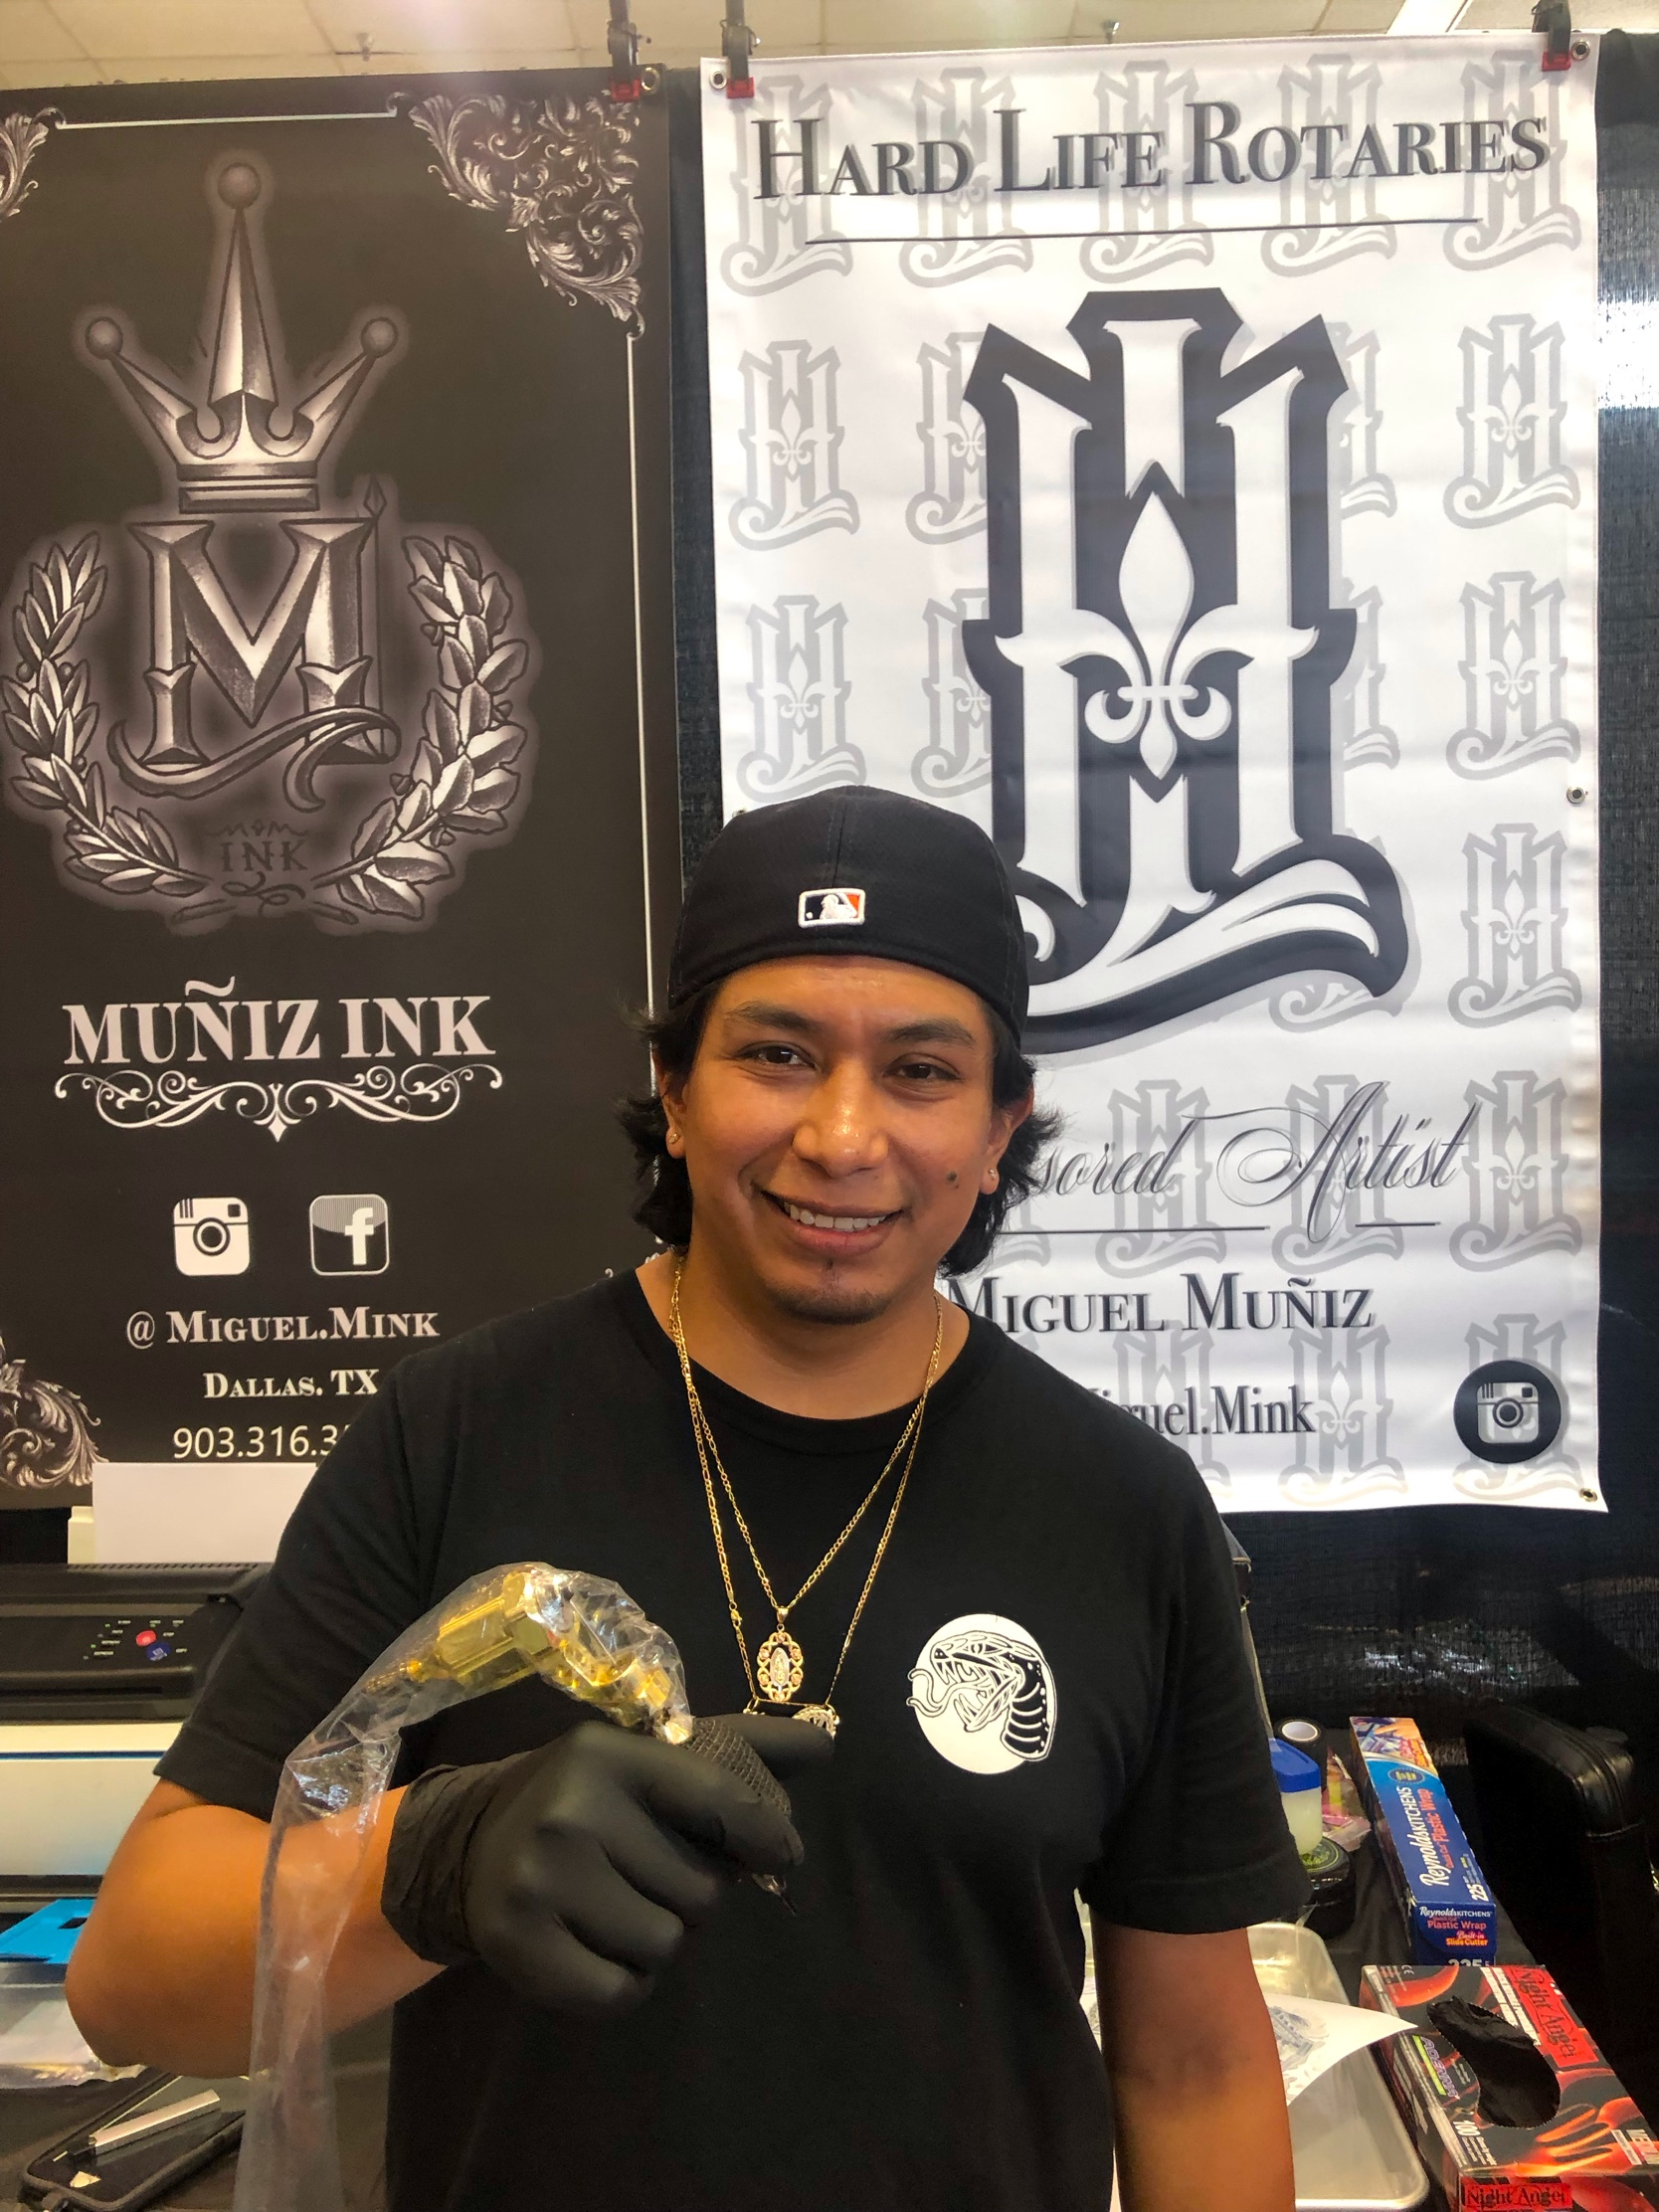 Miguel Muñiz - Miguel was going to school and started tattooing on the side just to make a few extra dollars doing something fun. He didn't know that he would end up liking it and turning it into a career. Miguel finished school but still stuck with tattooing. He is now the shop manager of Artistic Encounter (Rosemeade location) in Dallas. He is a very versatile artist that likes to tattoo in many styles from Neo traditional, full color, watercolor, black and gray, coverups and just about anything in between. Miguel loves new challenges so he is always looking forward to doing new things and trying out new styles. Click his picture to check out his work.